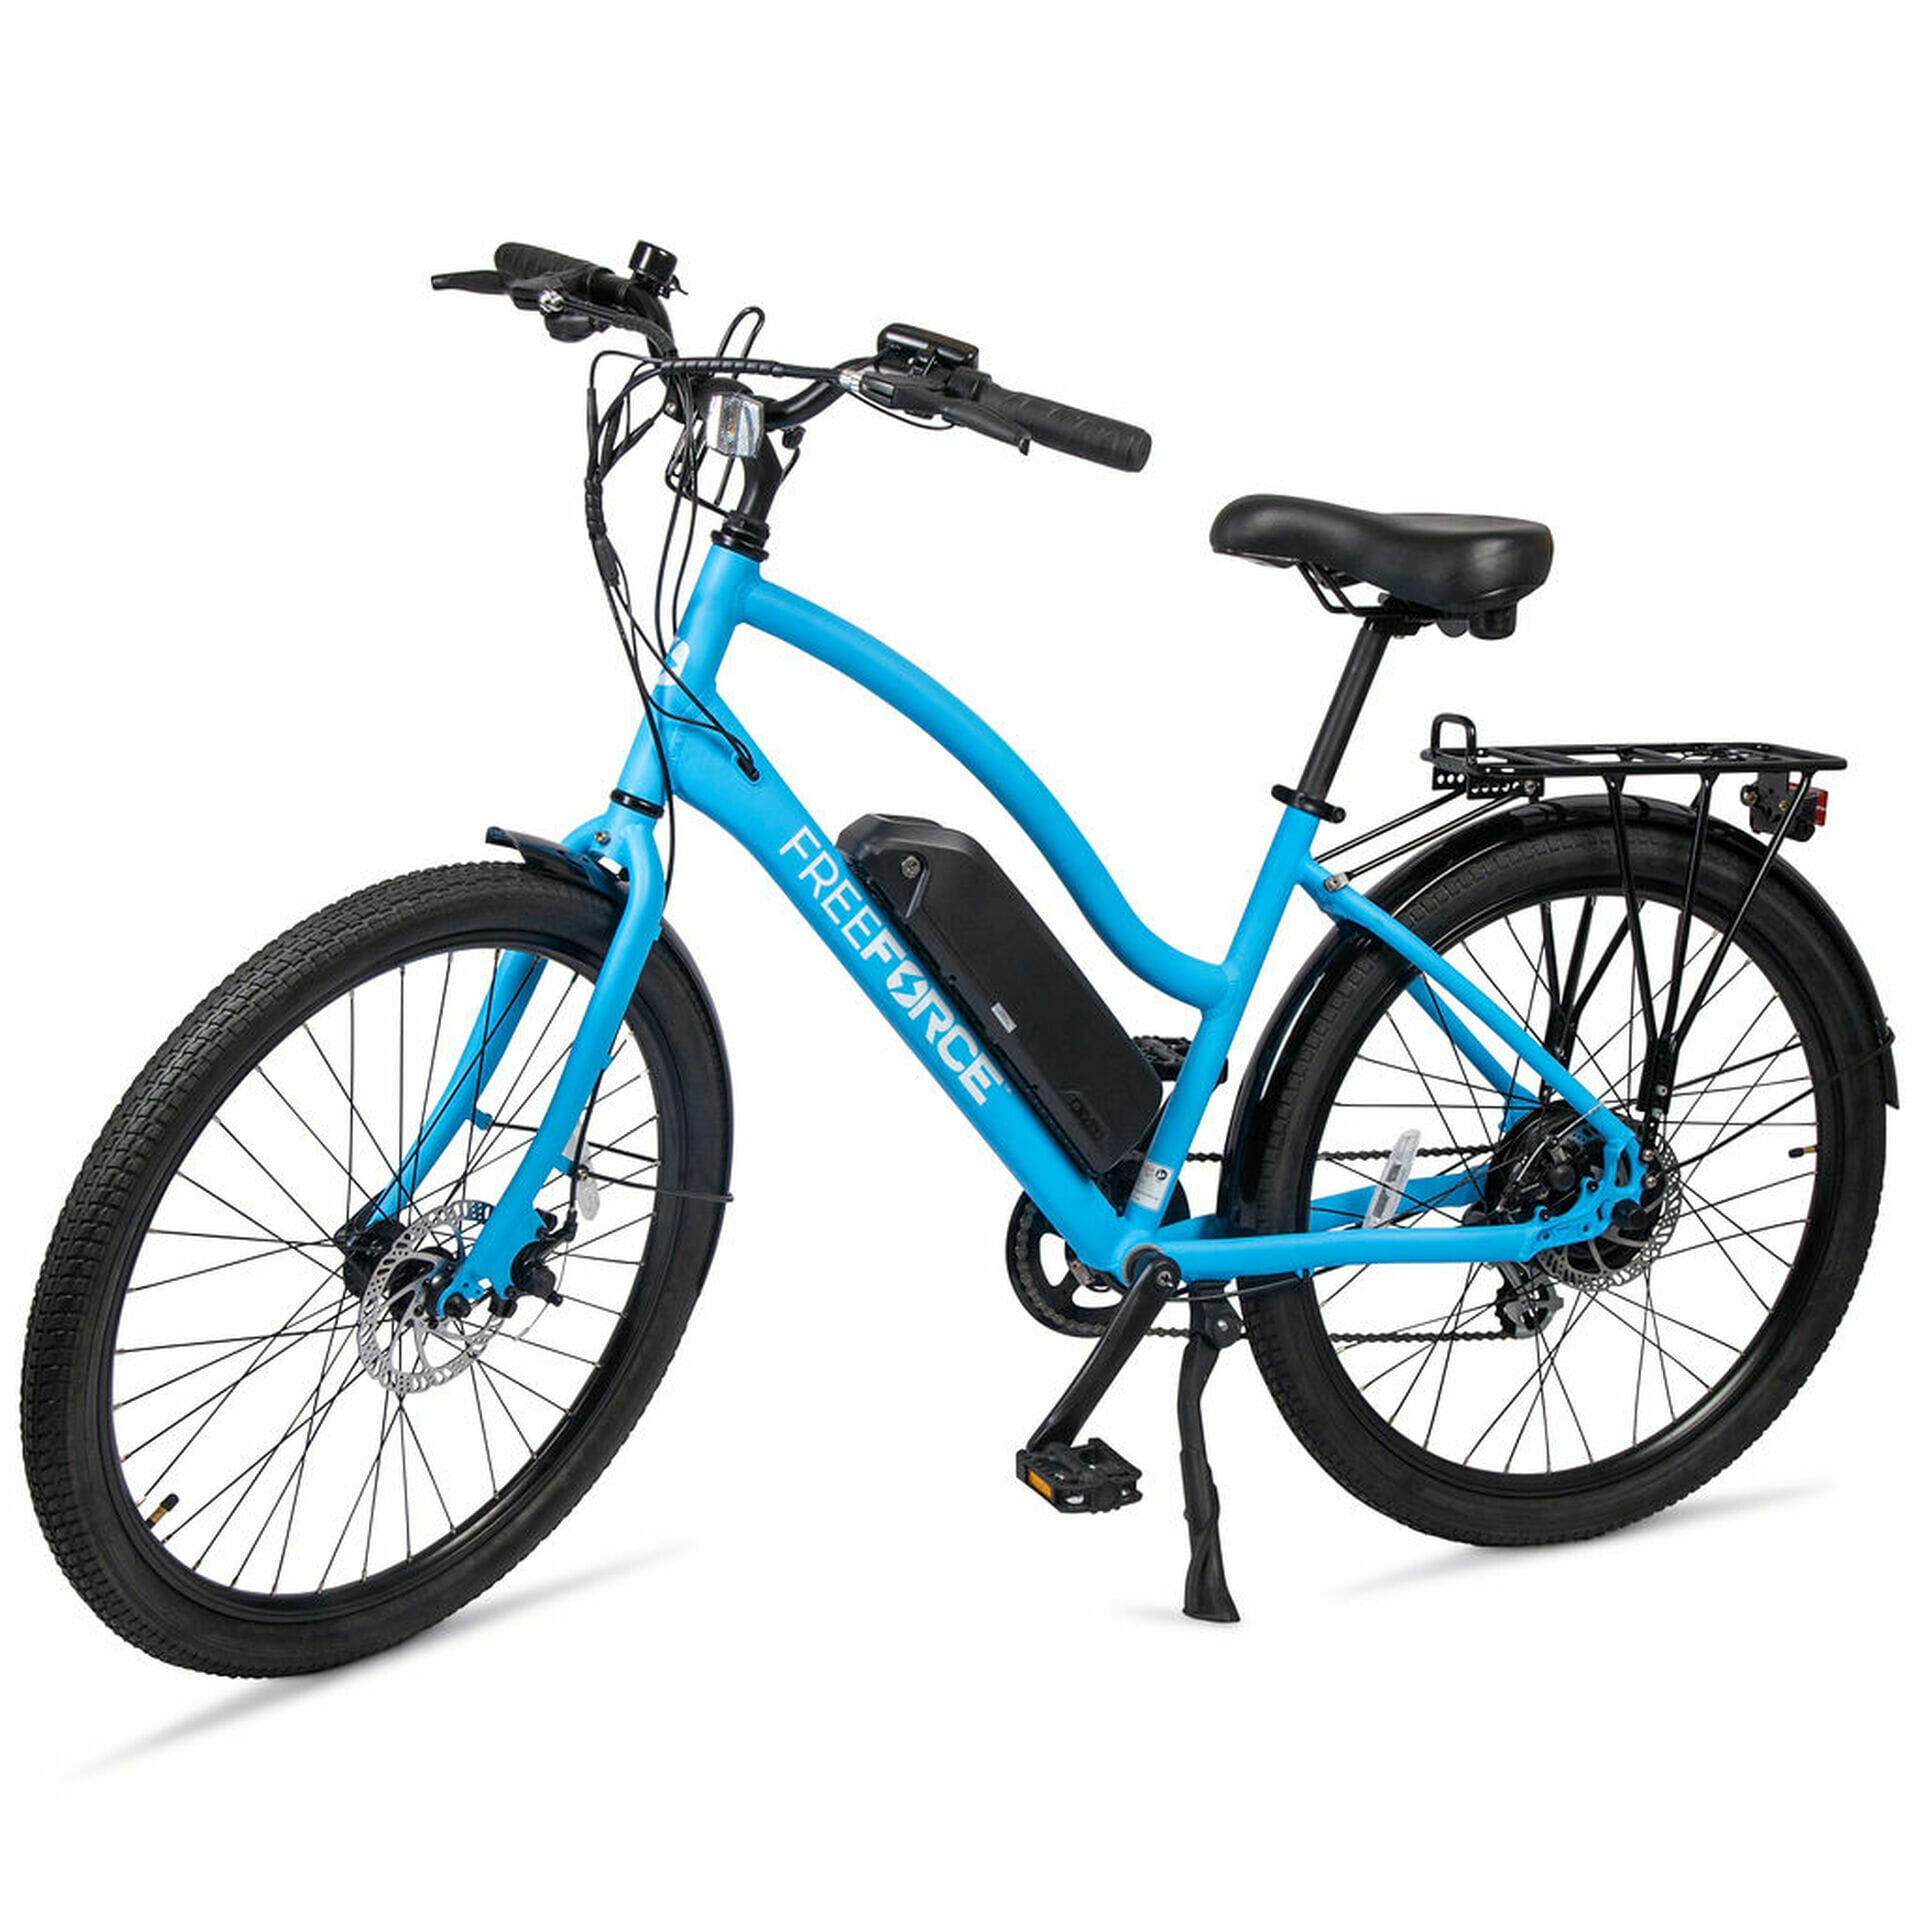 5 reasons why the FreeForce Beach Cruiser electric bike is awesome for women 3